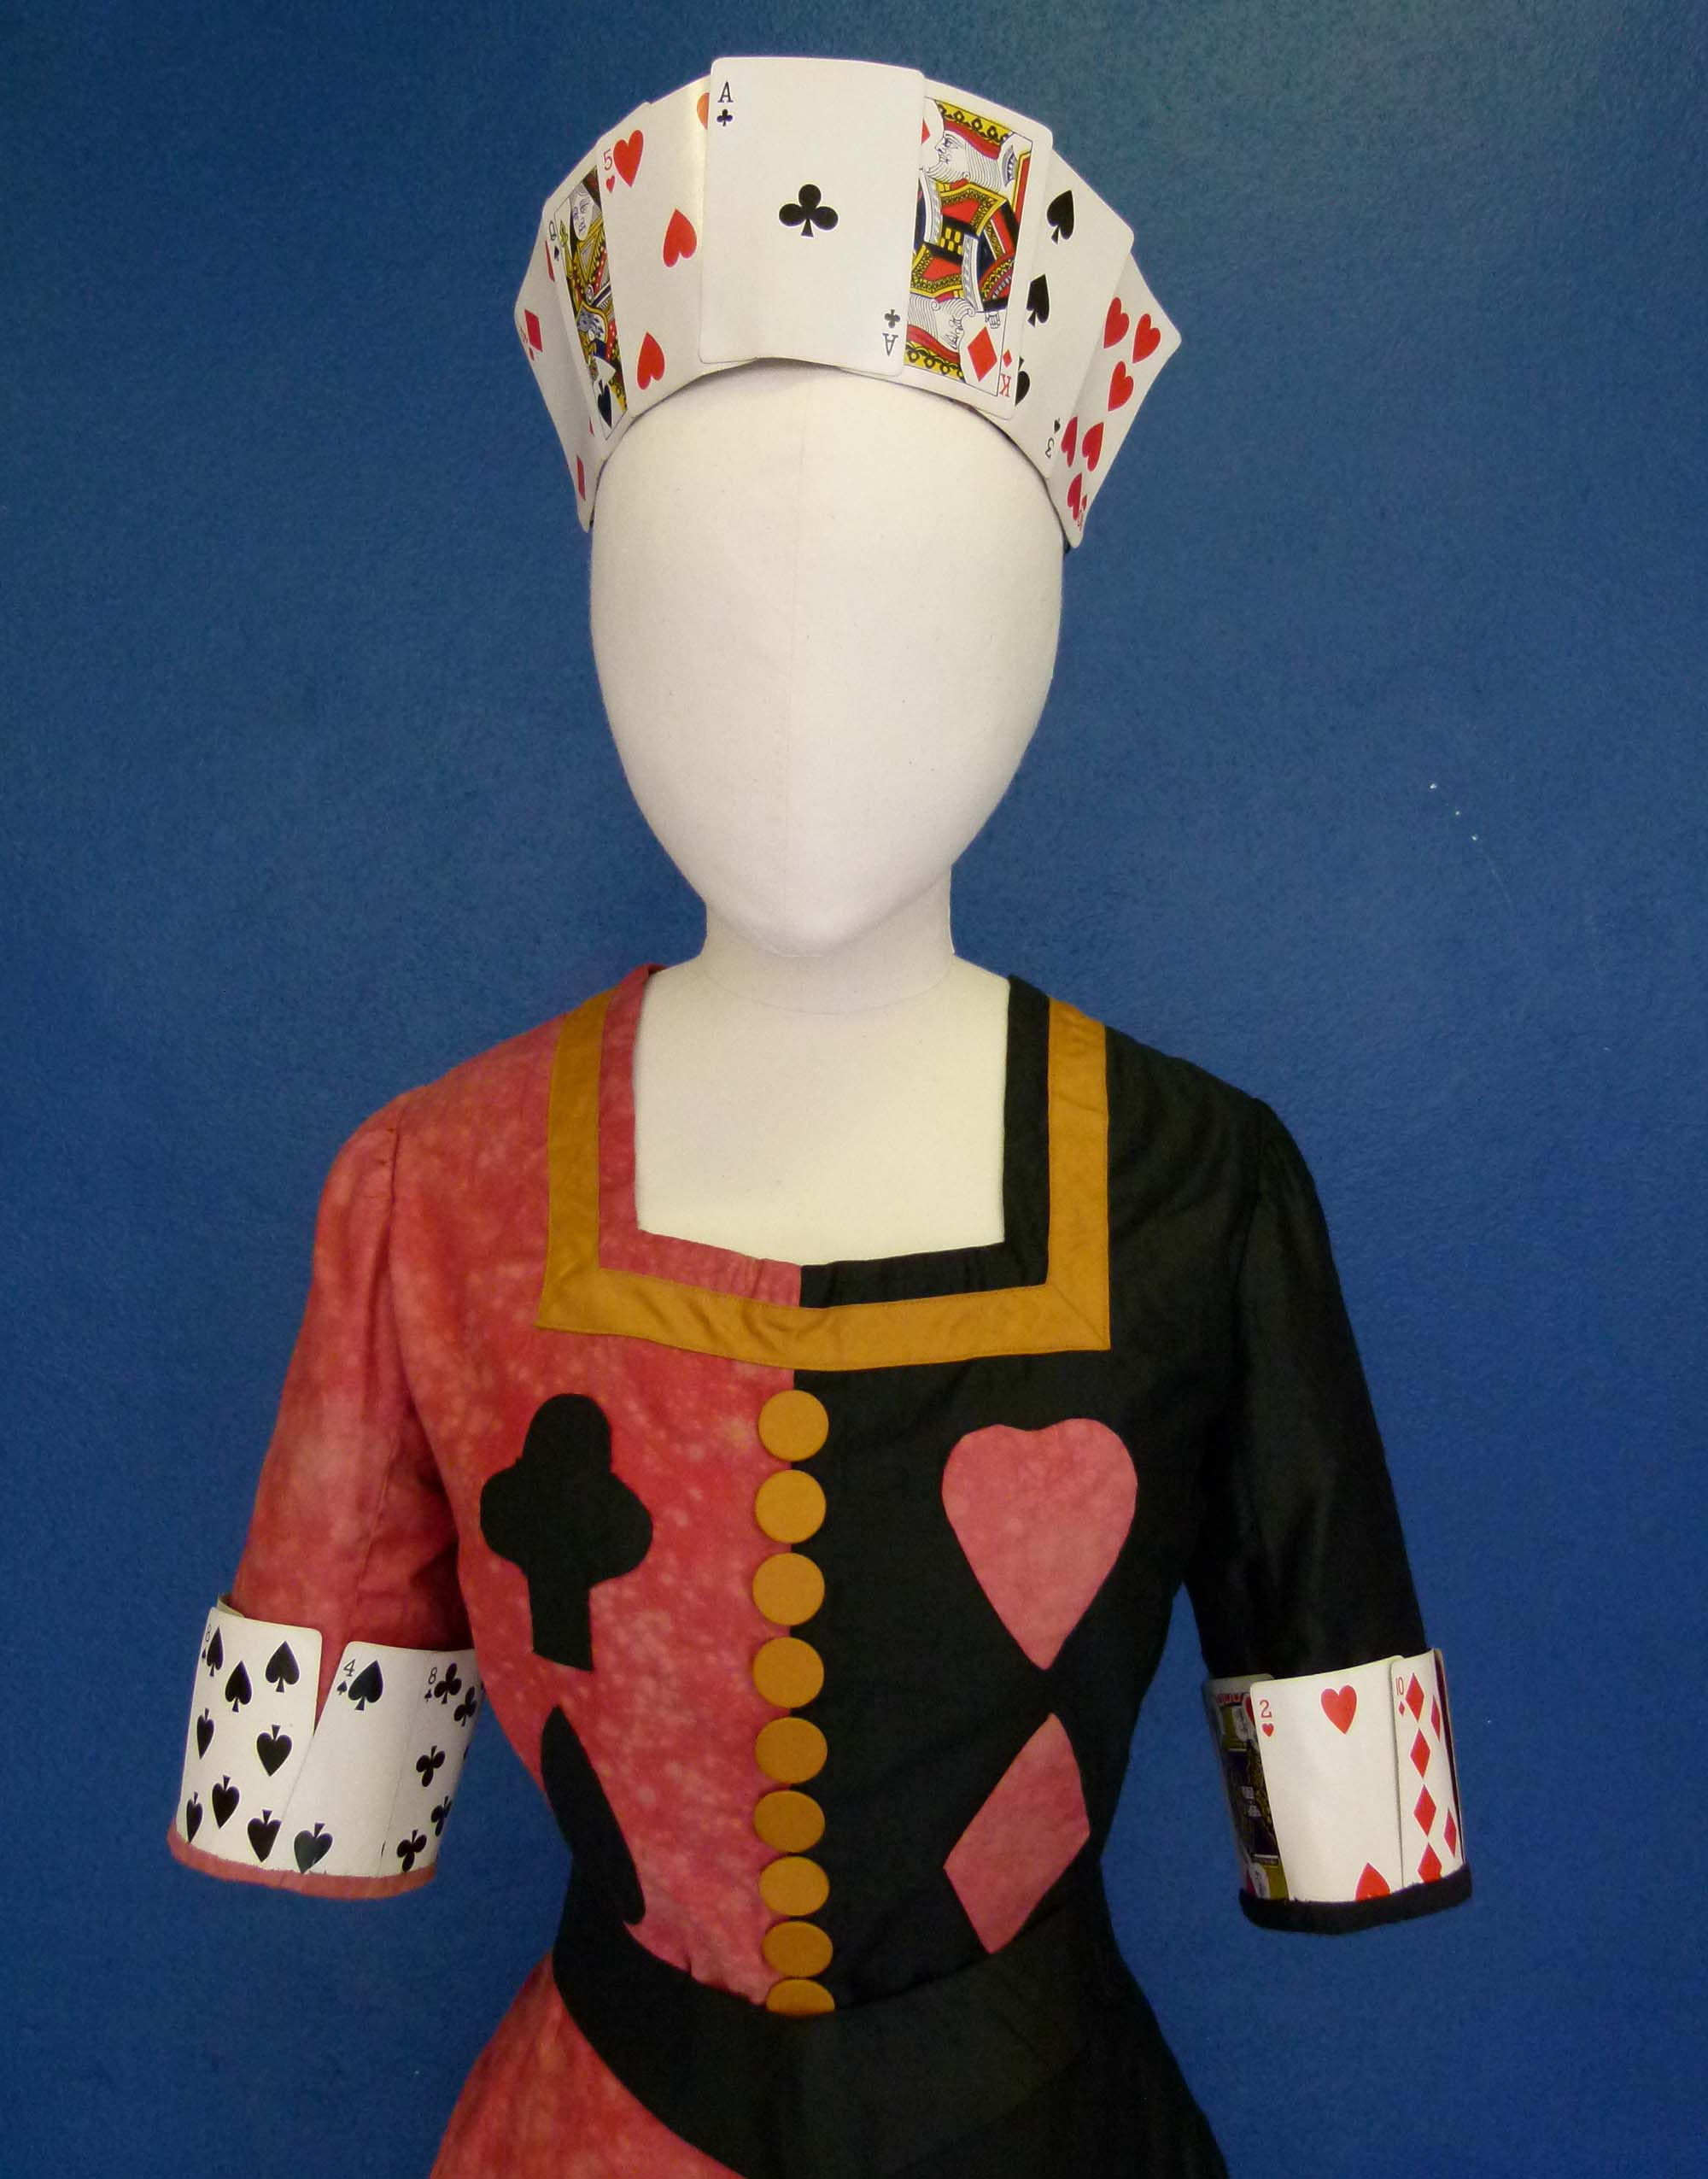 a photo of a dress on a mannequin with hearts and clubs motifs